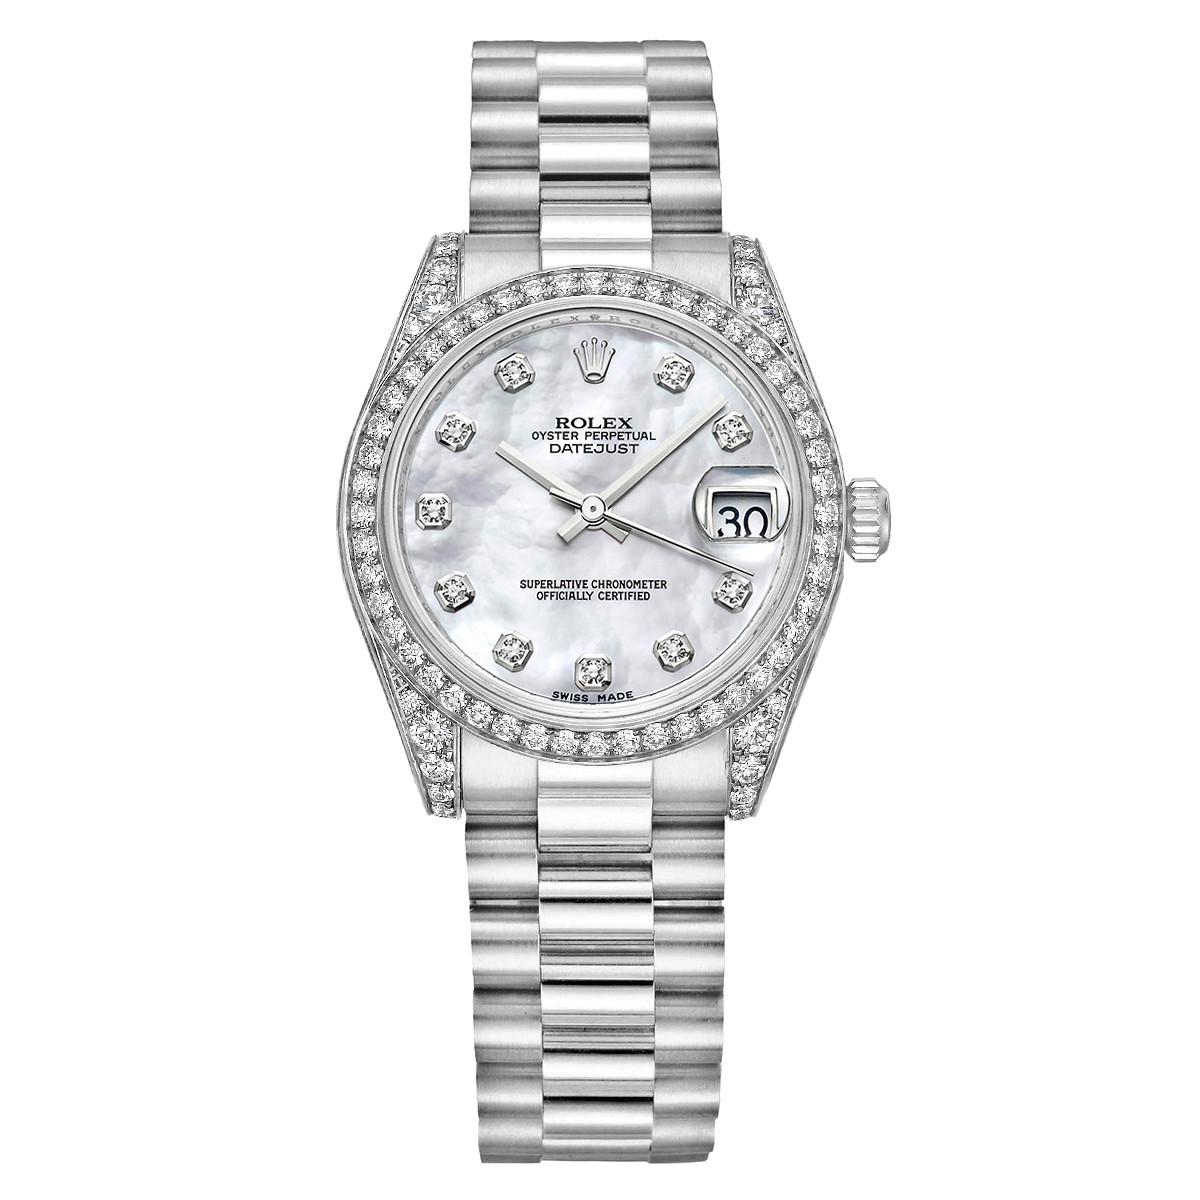 Datejust 31 White Gold & Diamonds (178159)